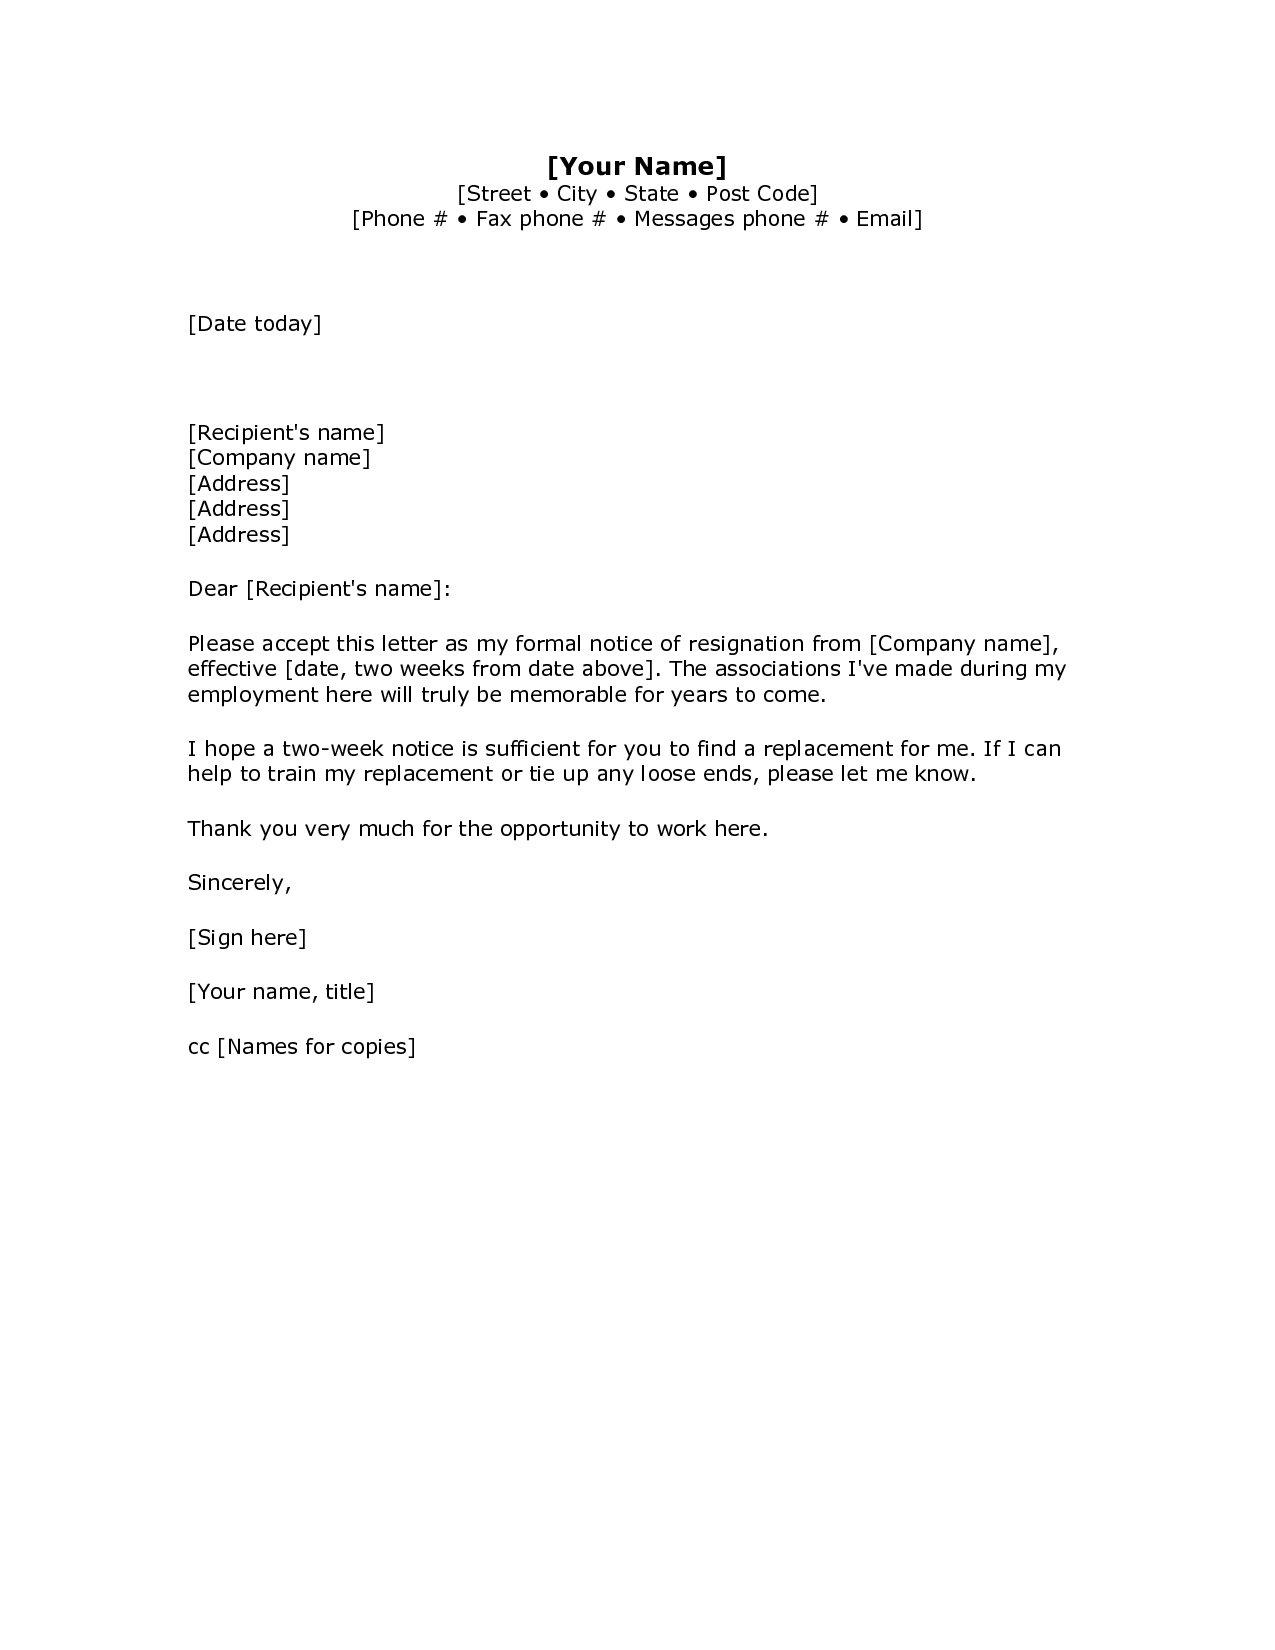 notice of resignation letter template Collection-2 Weeks Notice Letter Resignation Letter Week Notice Words HDWriting A Letter Resignation Email Letter Sample 11-p